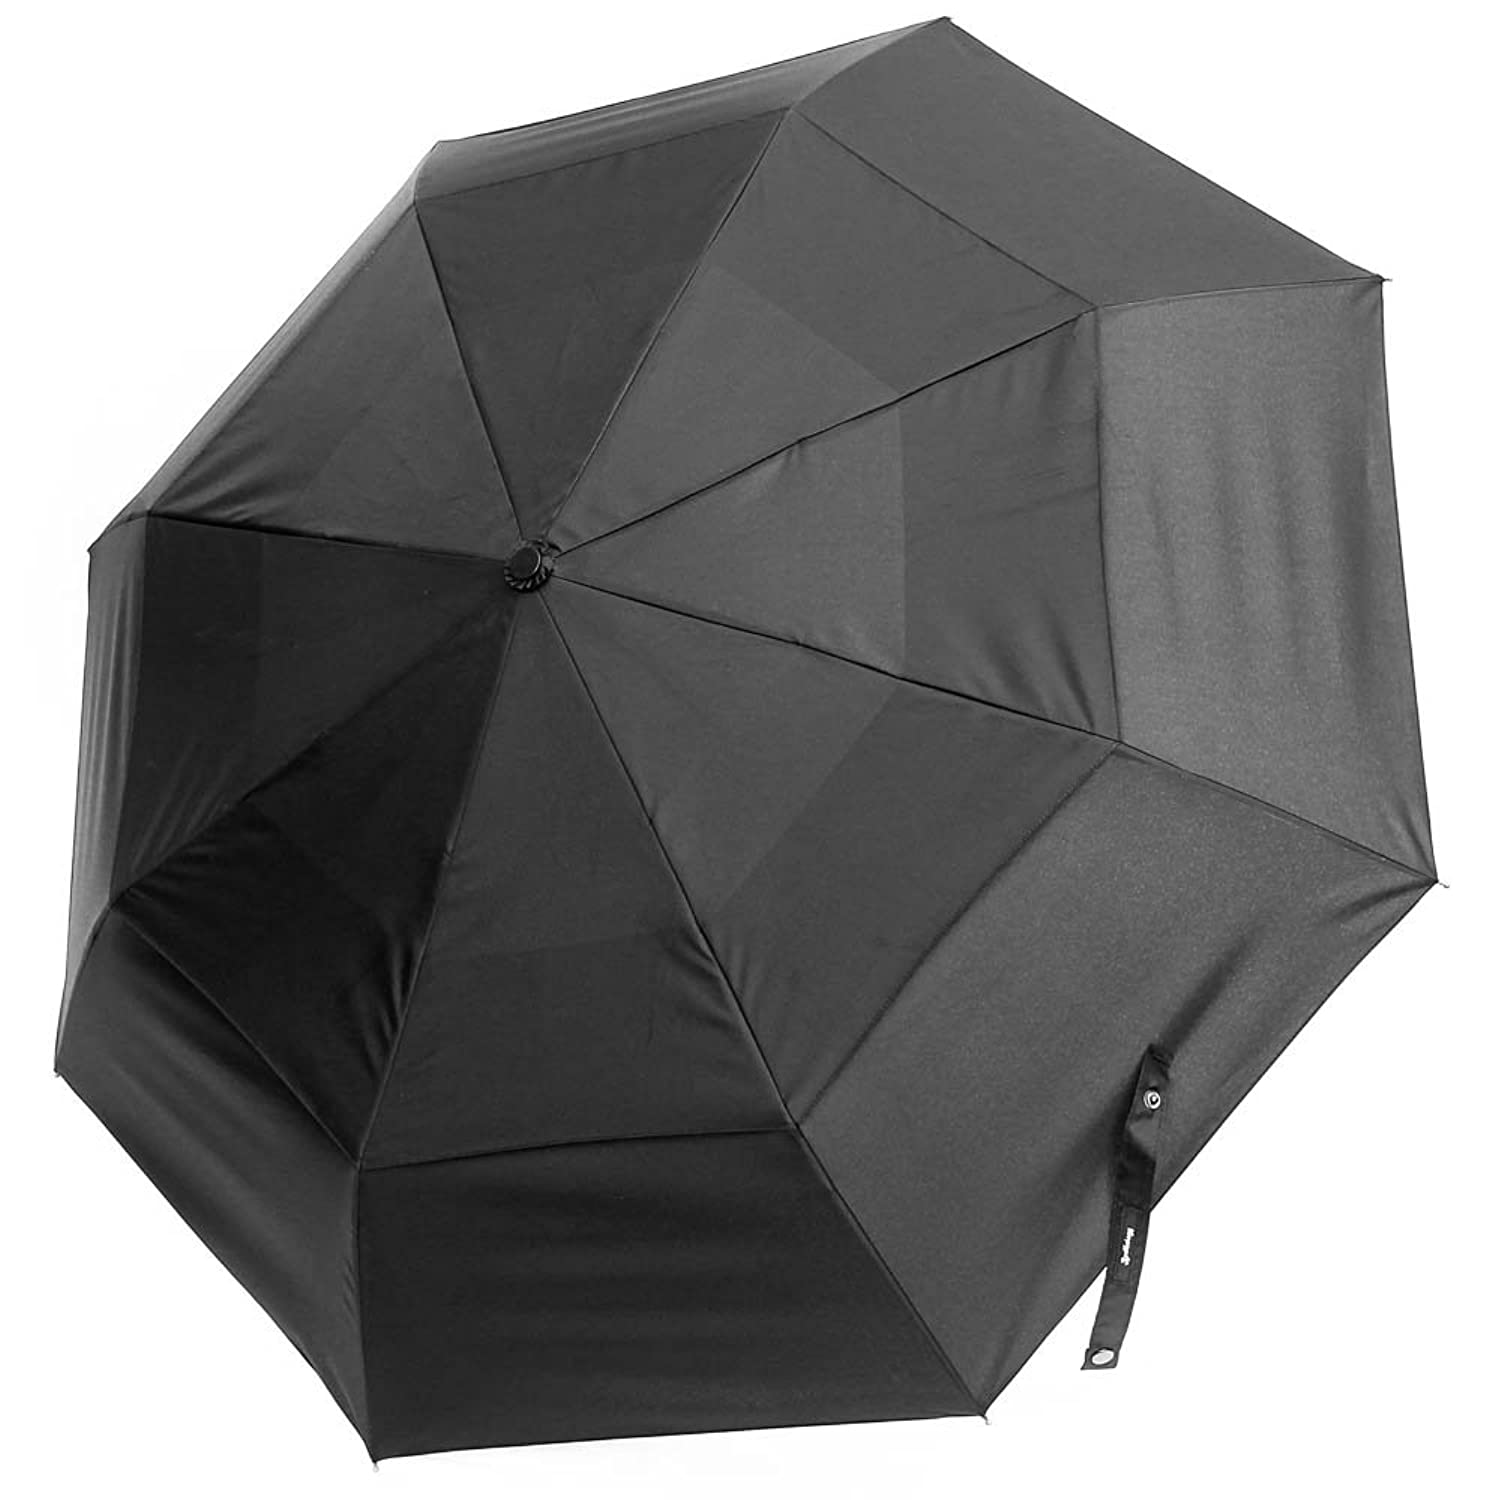 Amazon.com | Umbrella Compact Rain Folding Windproof Vented Auto Black Small Travel Umbrella | Umbrellas